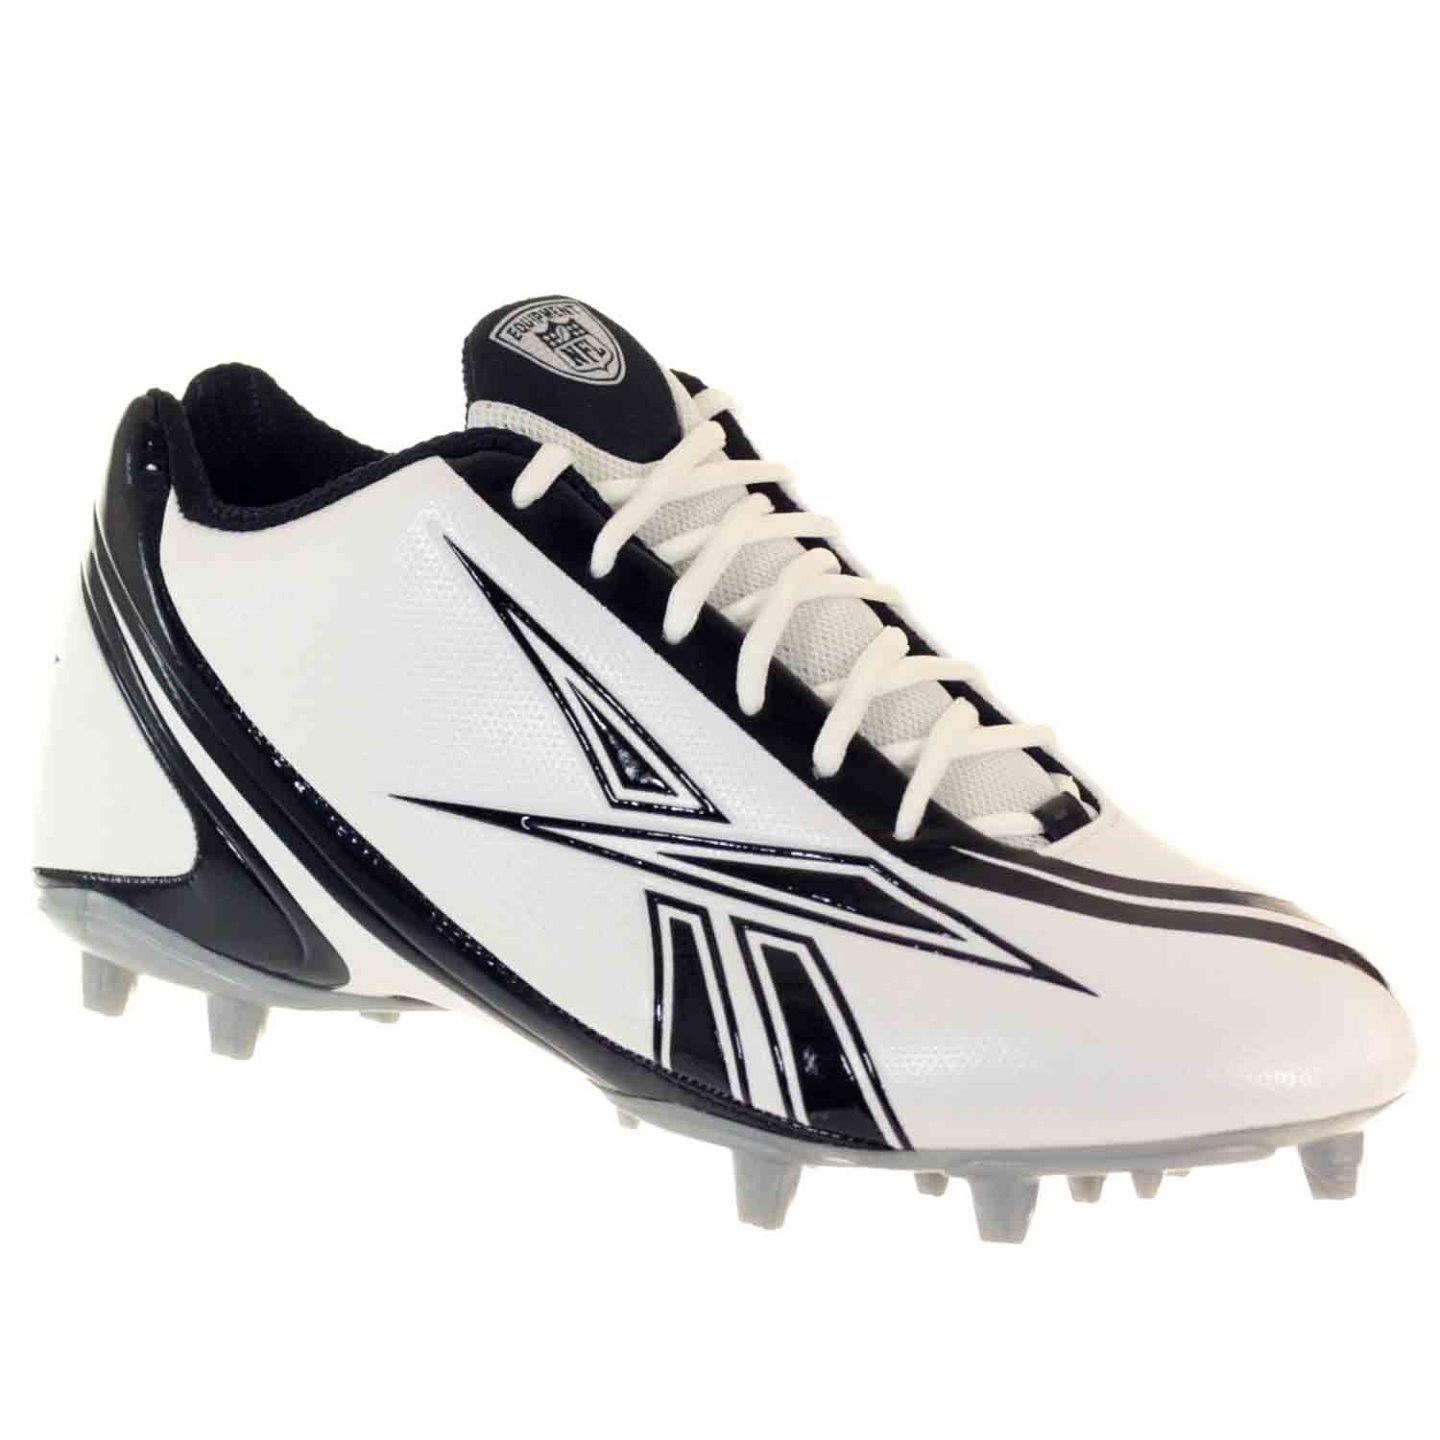 REEBOK PRO BURNER SPEED 5/8 M3 MENS FOOTBALL CLEATS WHITE BLACK 12